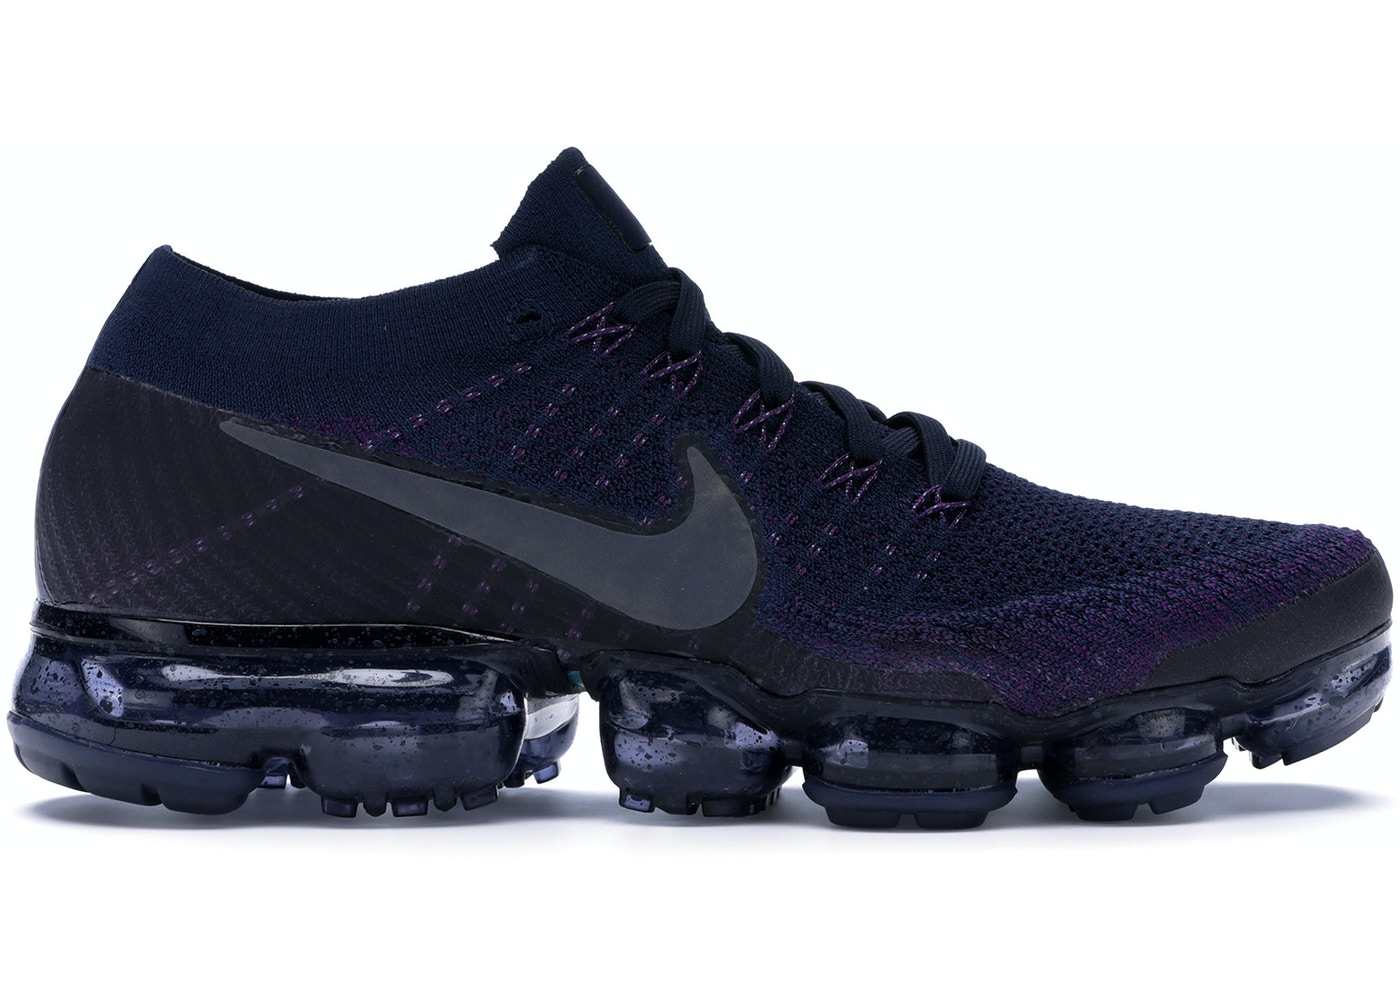 9aca4e5a3b37 Air VaporMax College Navy Night Purple - 899473-402